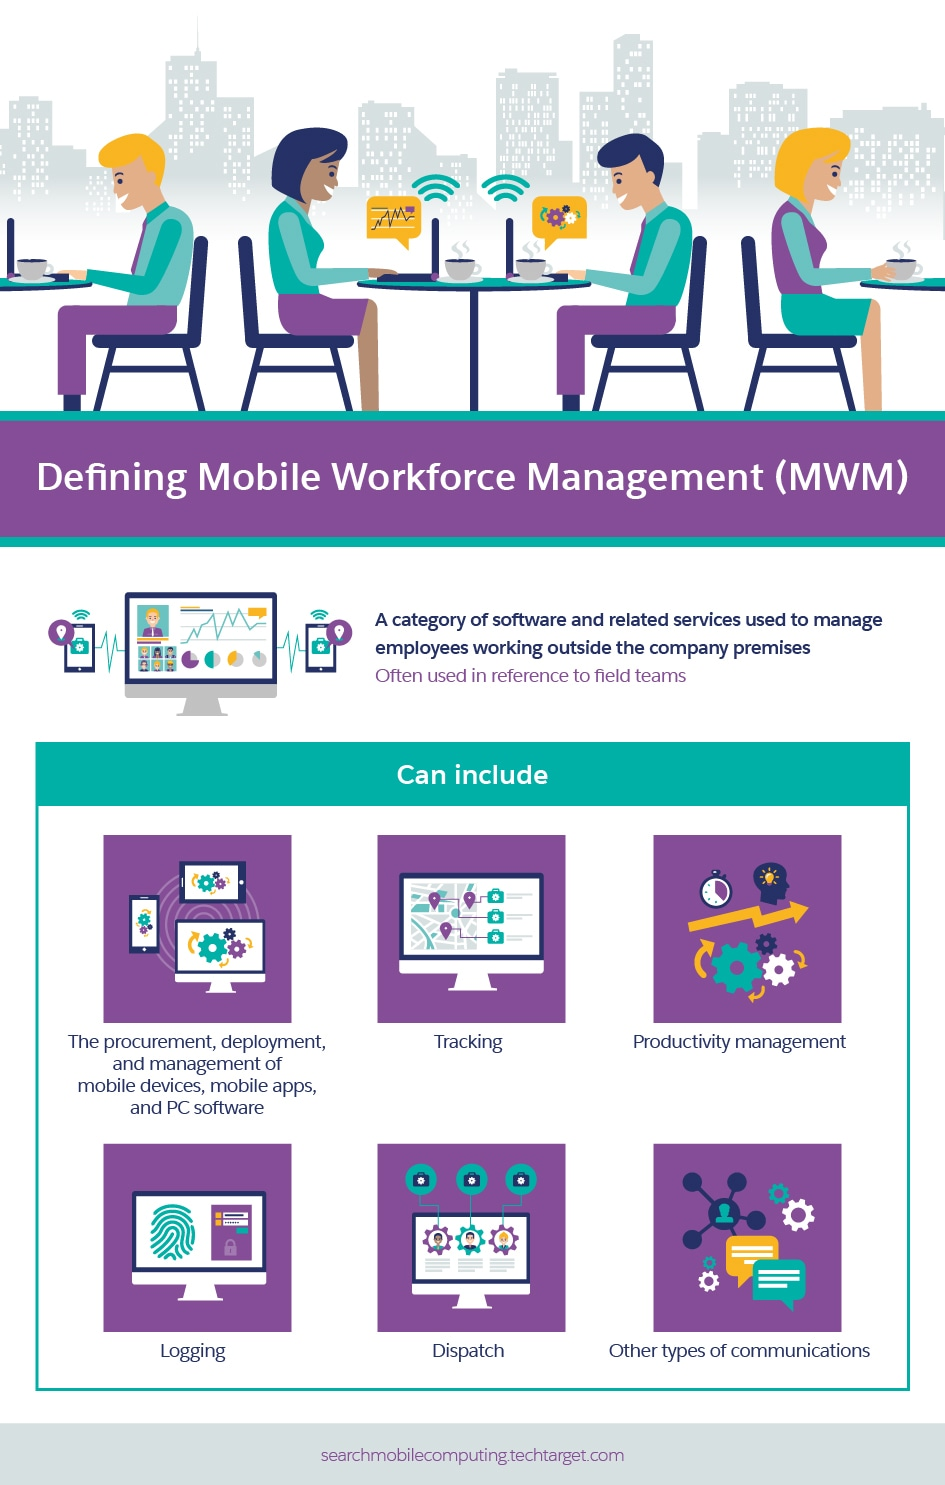 Defining Mobile Workforce Management